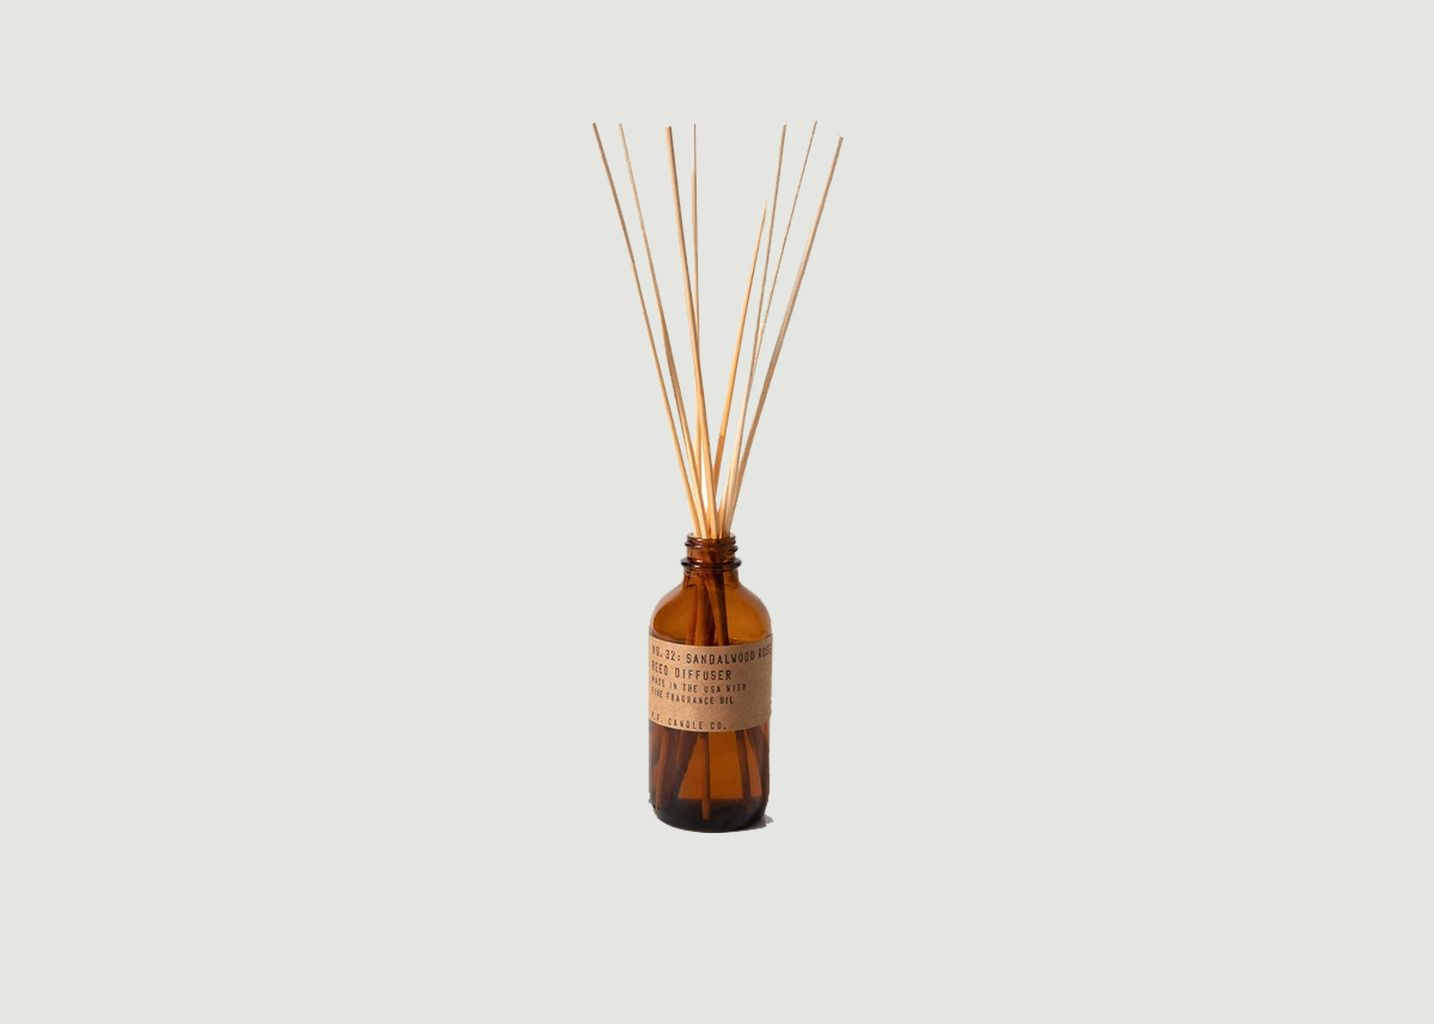 Diffuseur n°32 Sandalwood Rose - P.F. Candle CO.